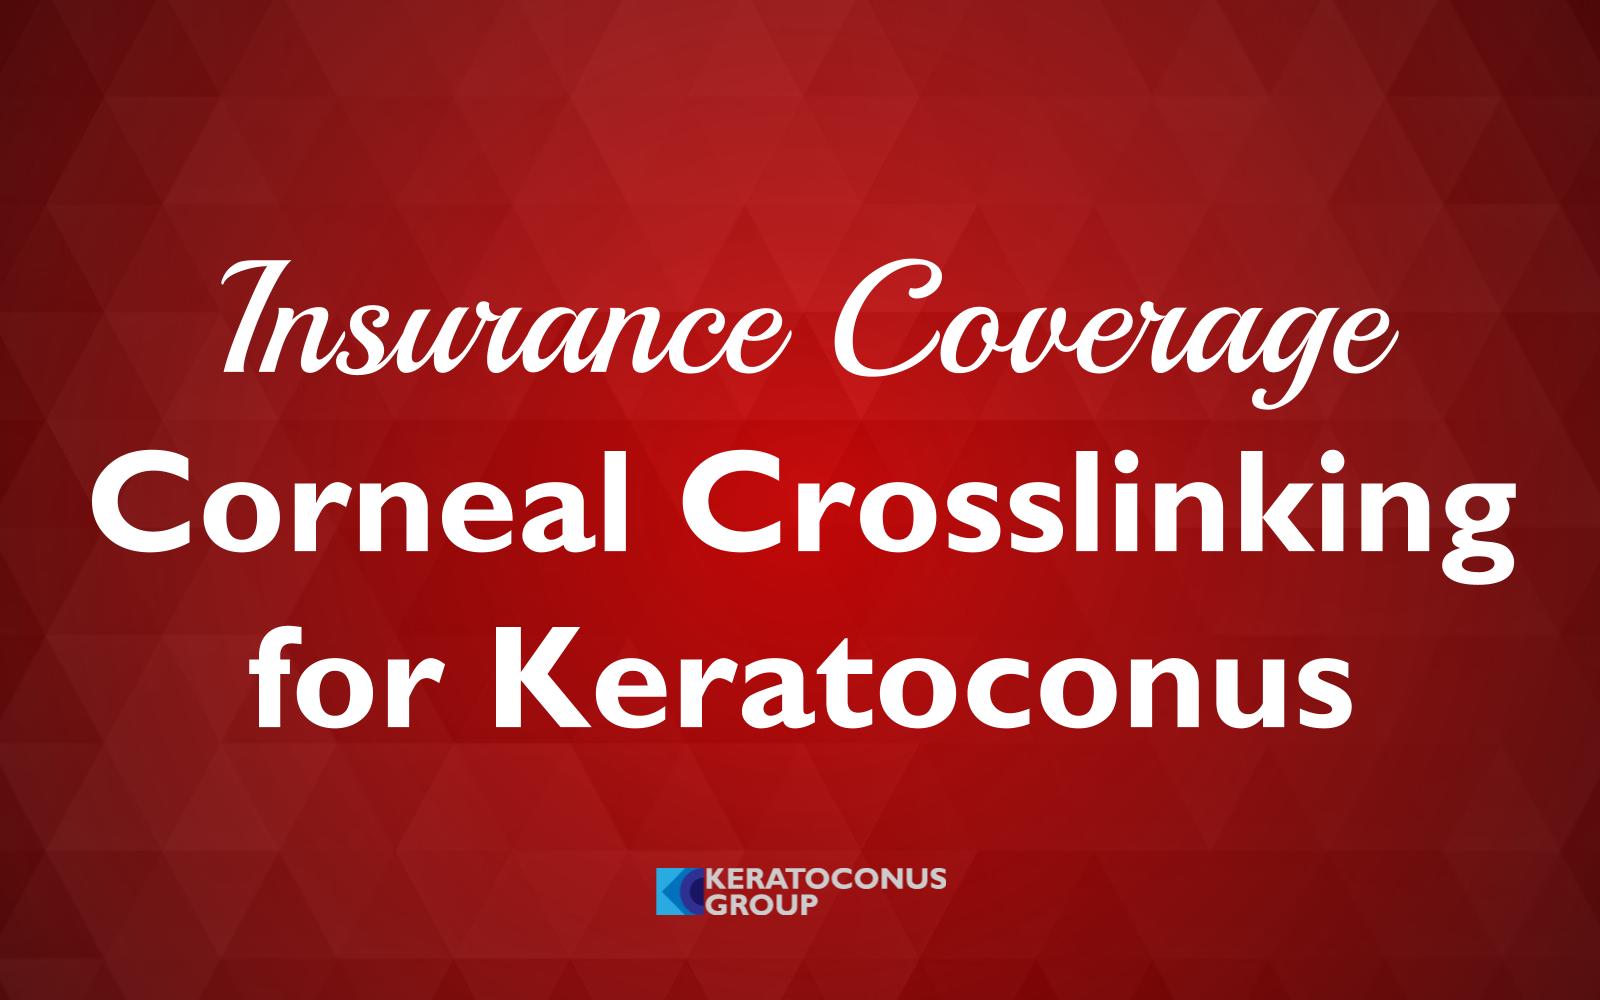 Corneal Crosslinking Insurance Coverage in the United States August 2018